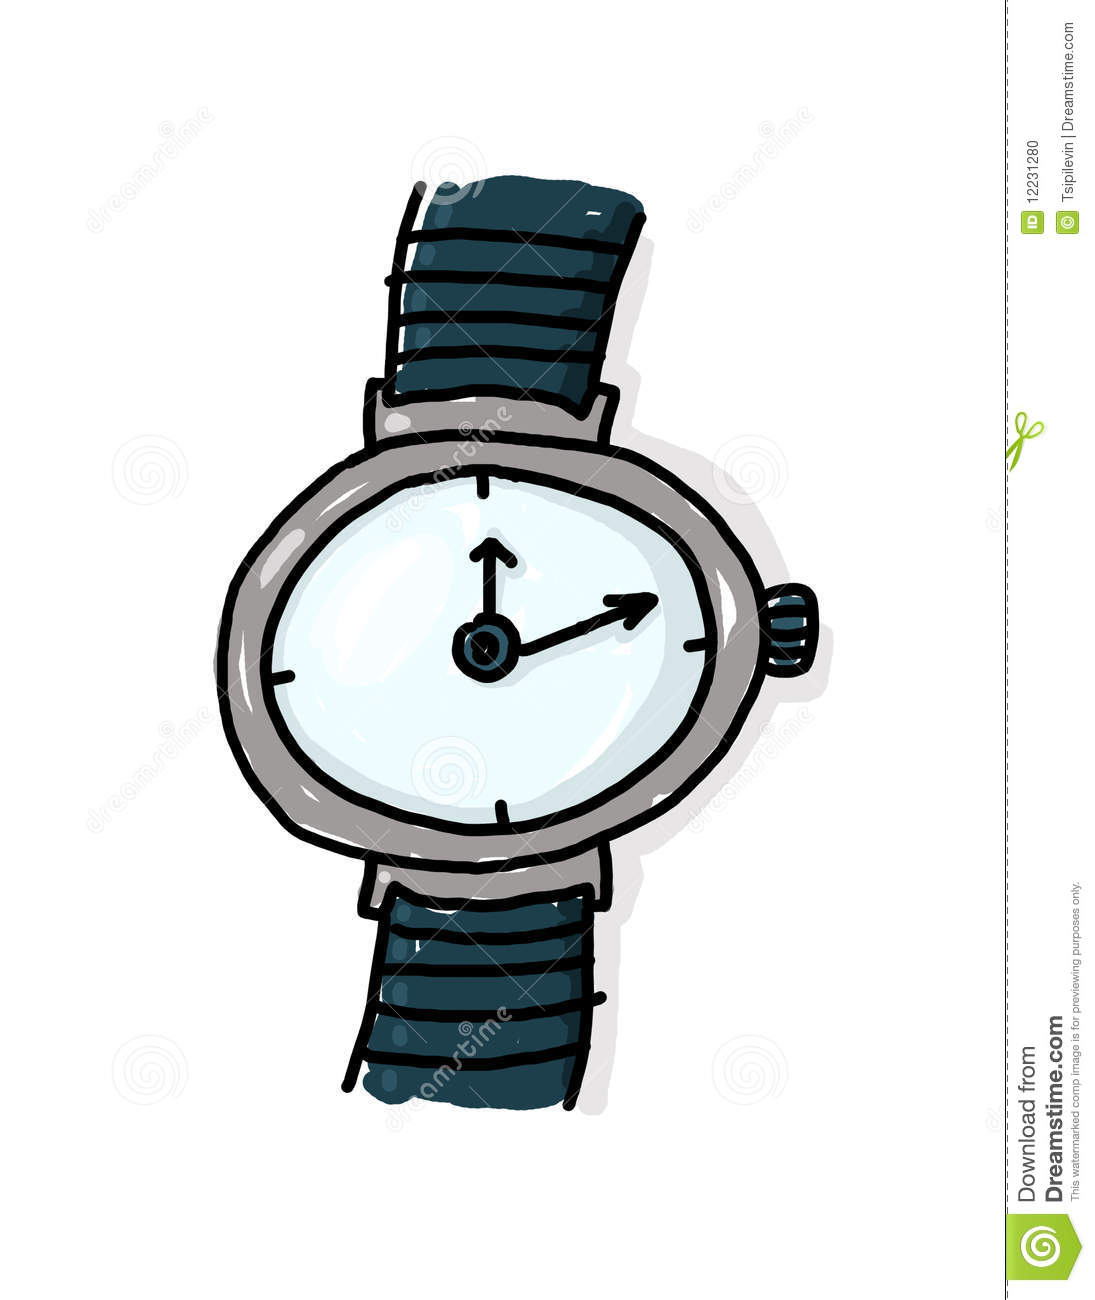 Wristwatch freehand illustration; Watch cartoon; Time concept.